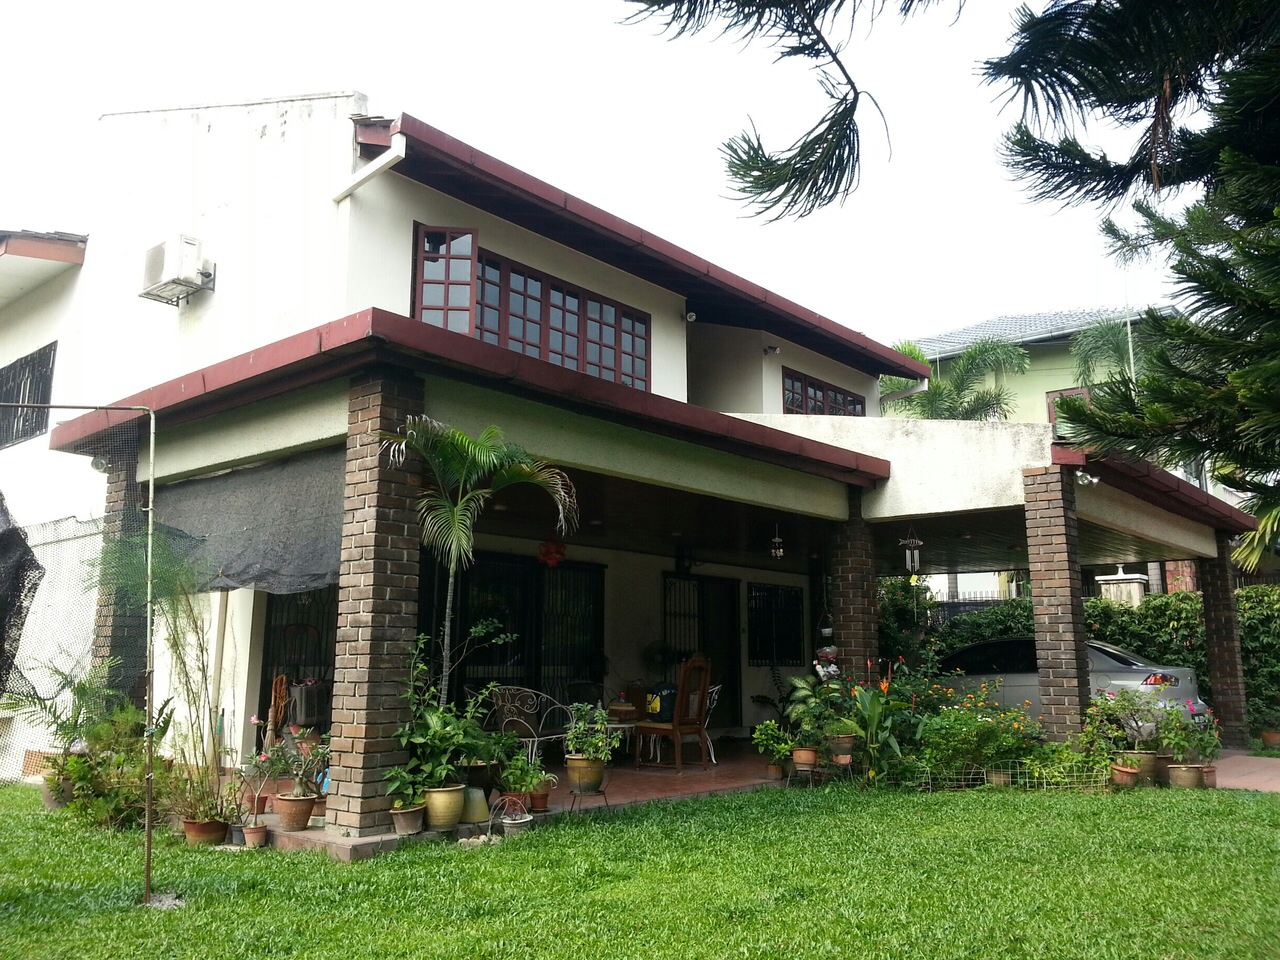 Bungalow for sale ss2 petaling jaya ss2 house for sale pj for Two storey bungalow